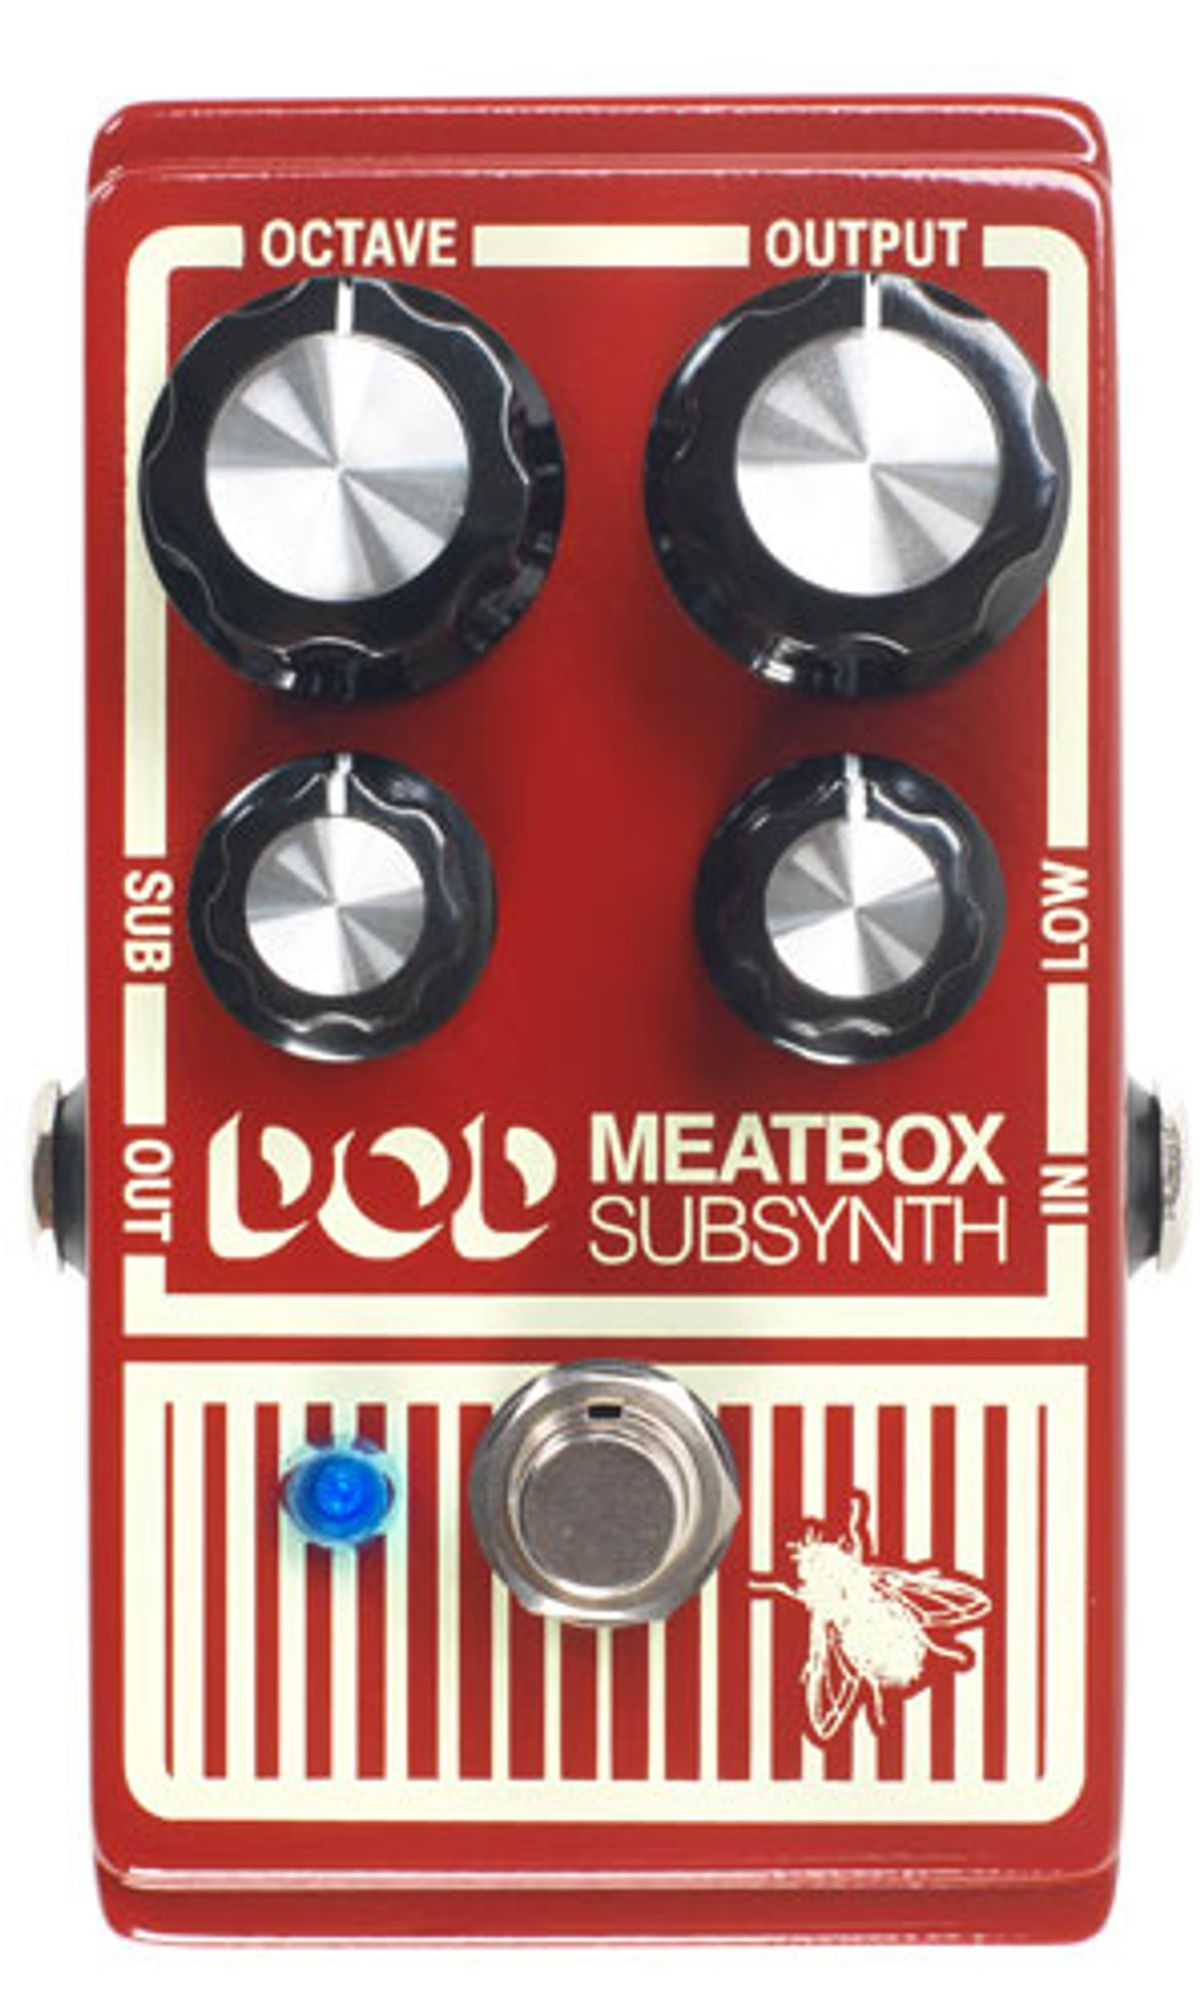 DigiTech Reissues the DOD Meatbox Subharmonic Bass Synthesizer